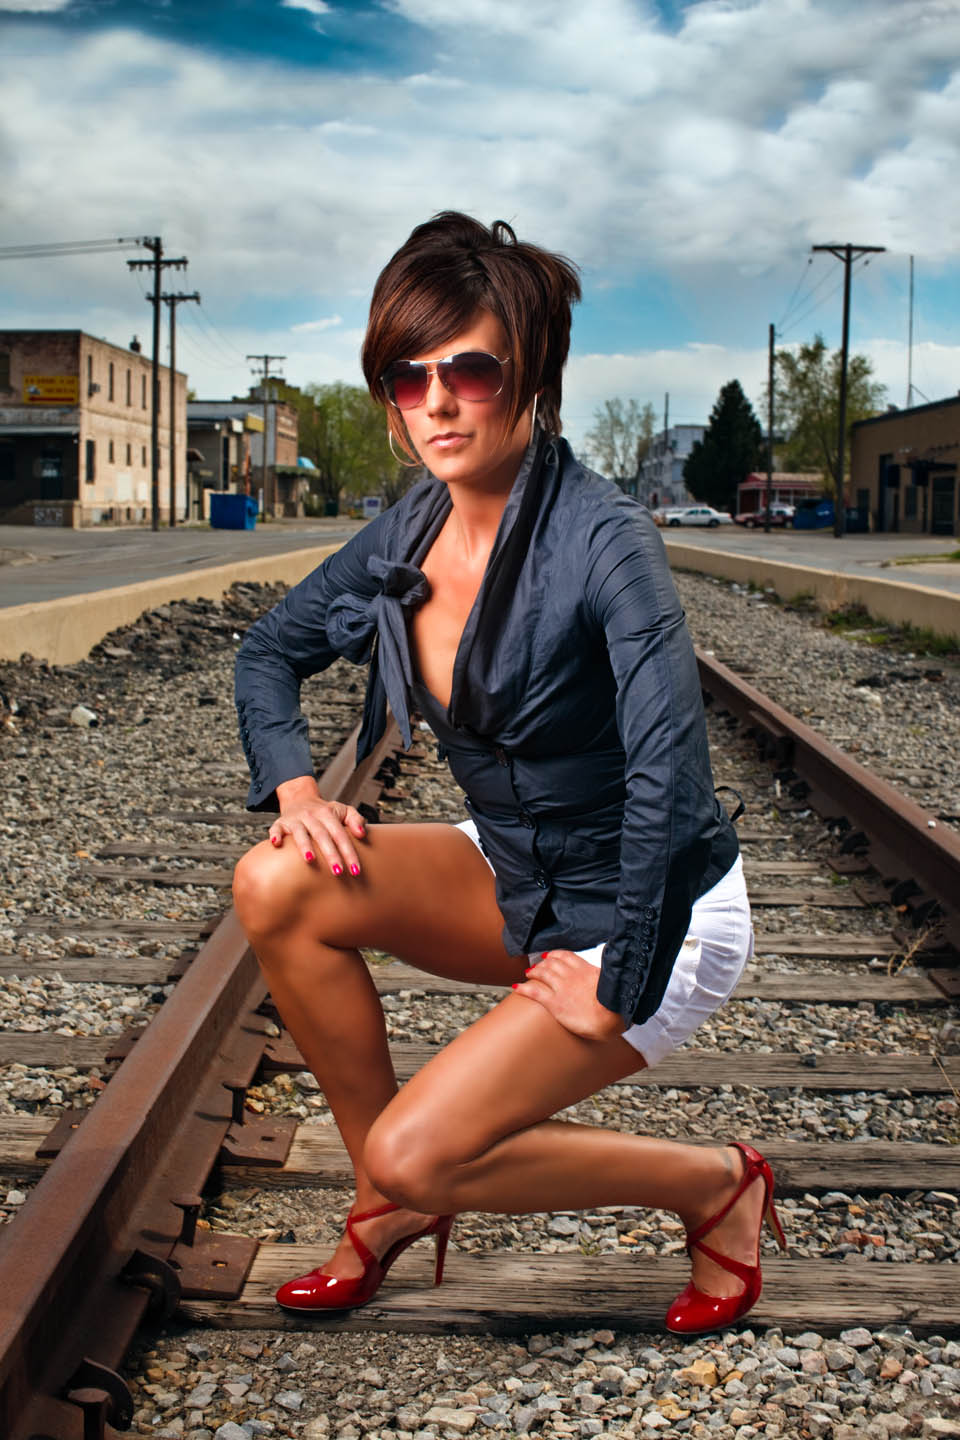 Kristin on train tracks. It's safe these tracks are abandoned.